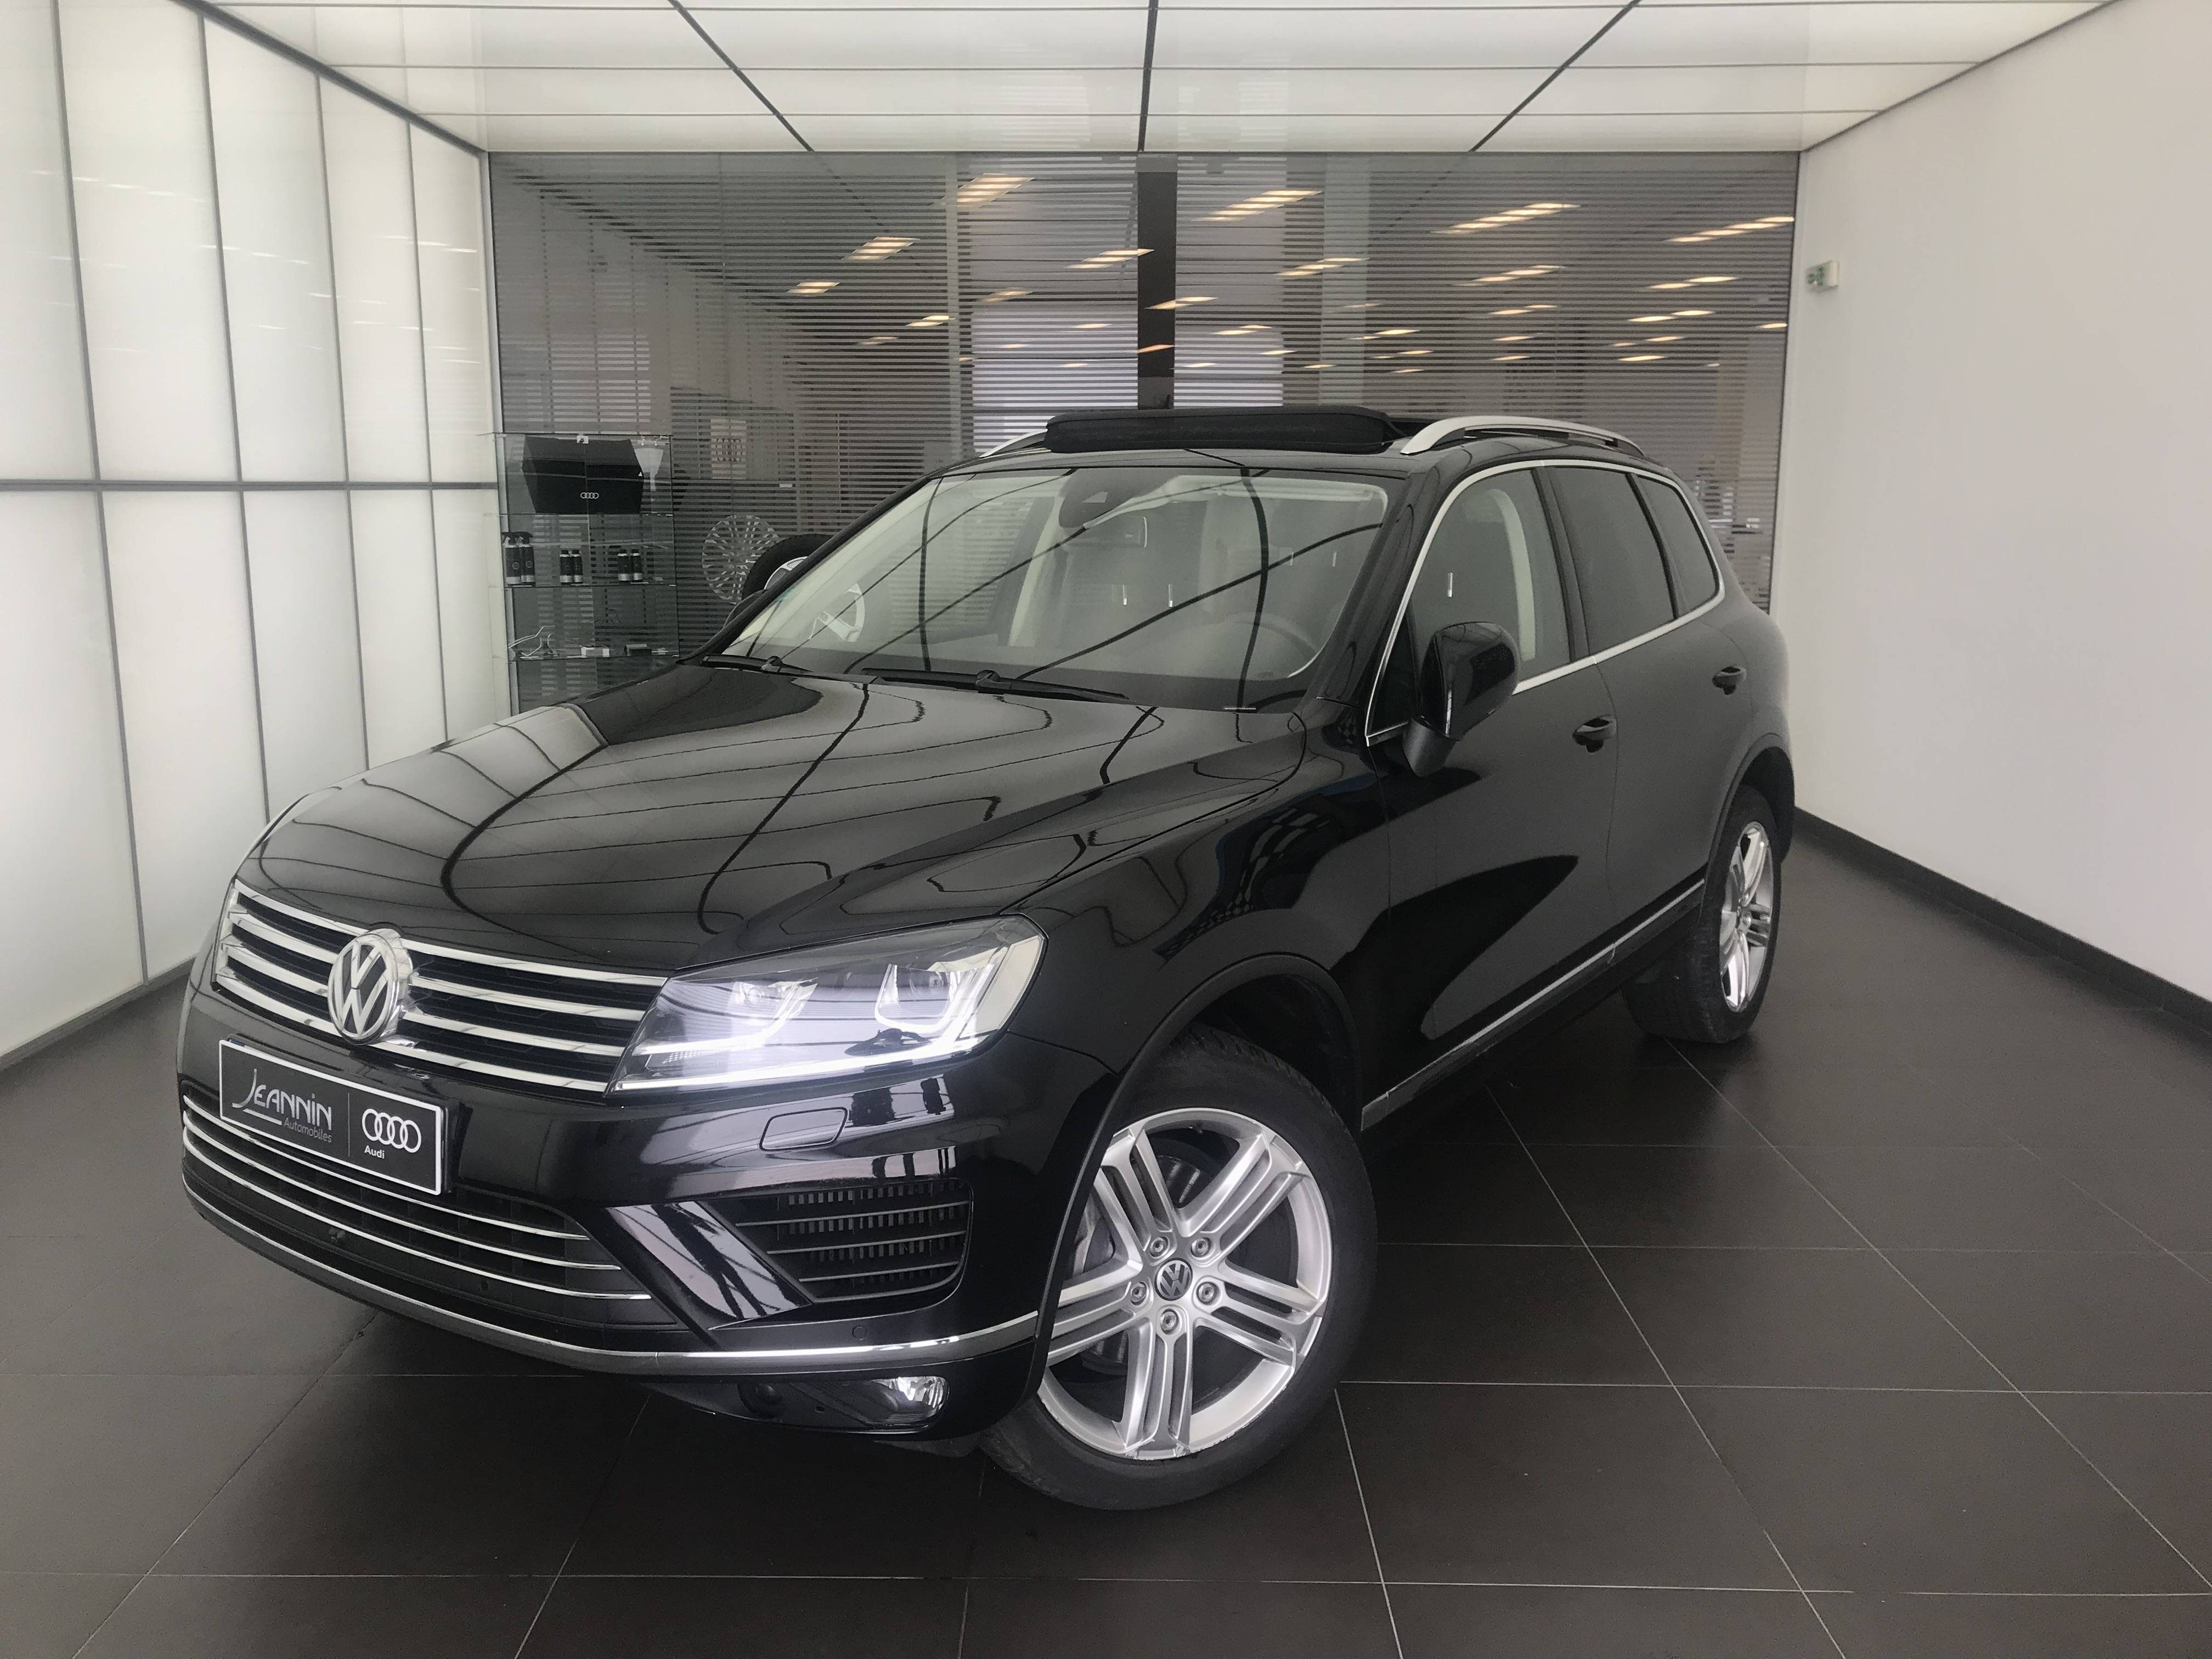 Touareg 3.0 V6 TDI 204 4Motion BlueMotion Technology